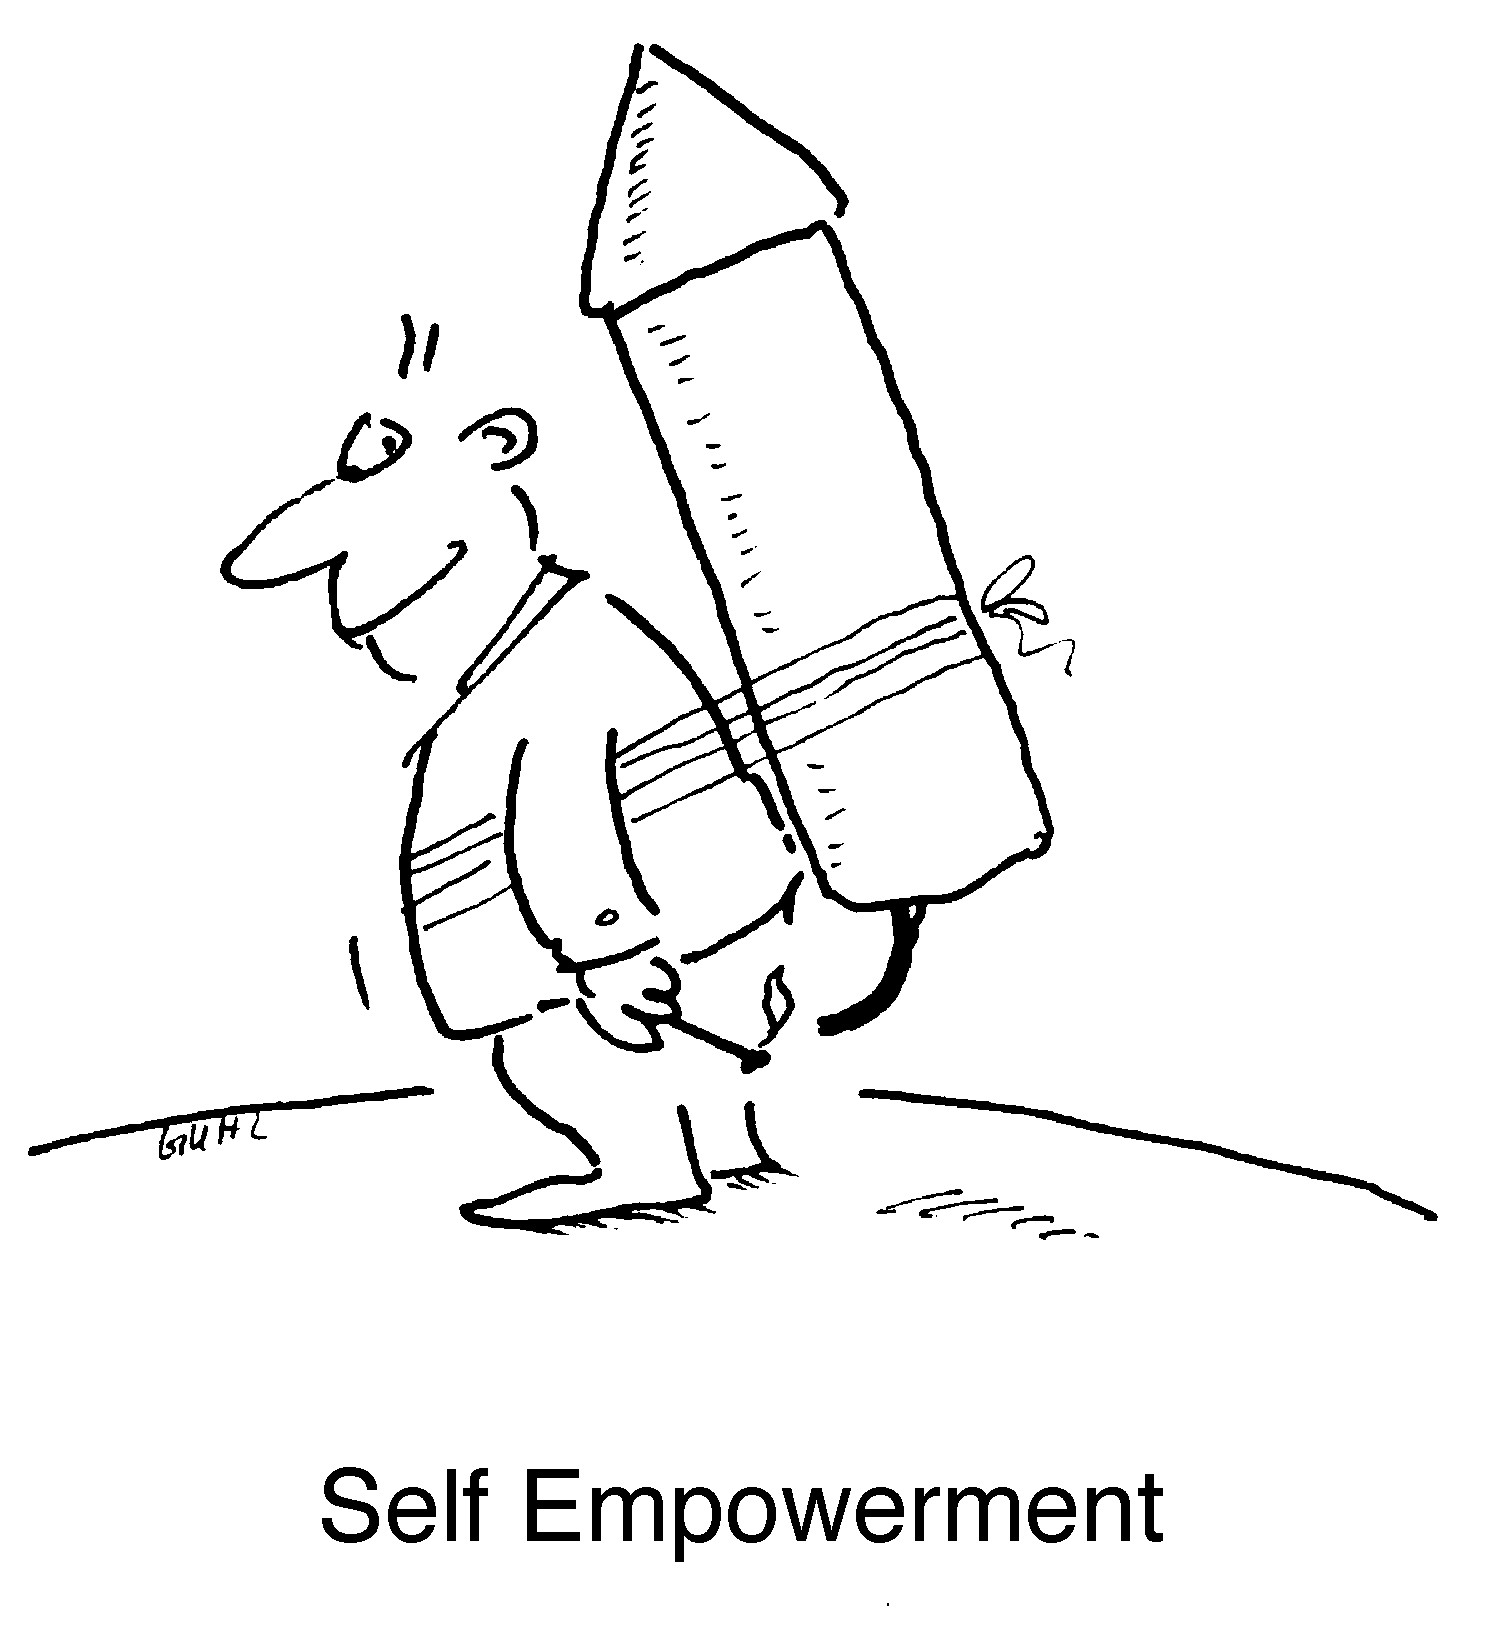 Negative/Problem Thought Patterns: Empowerment, Pride